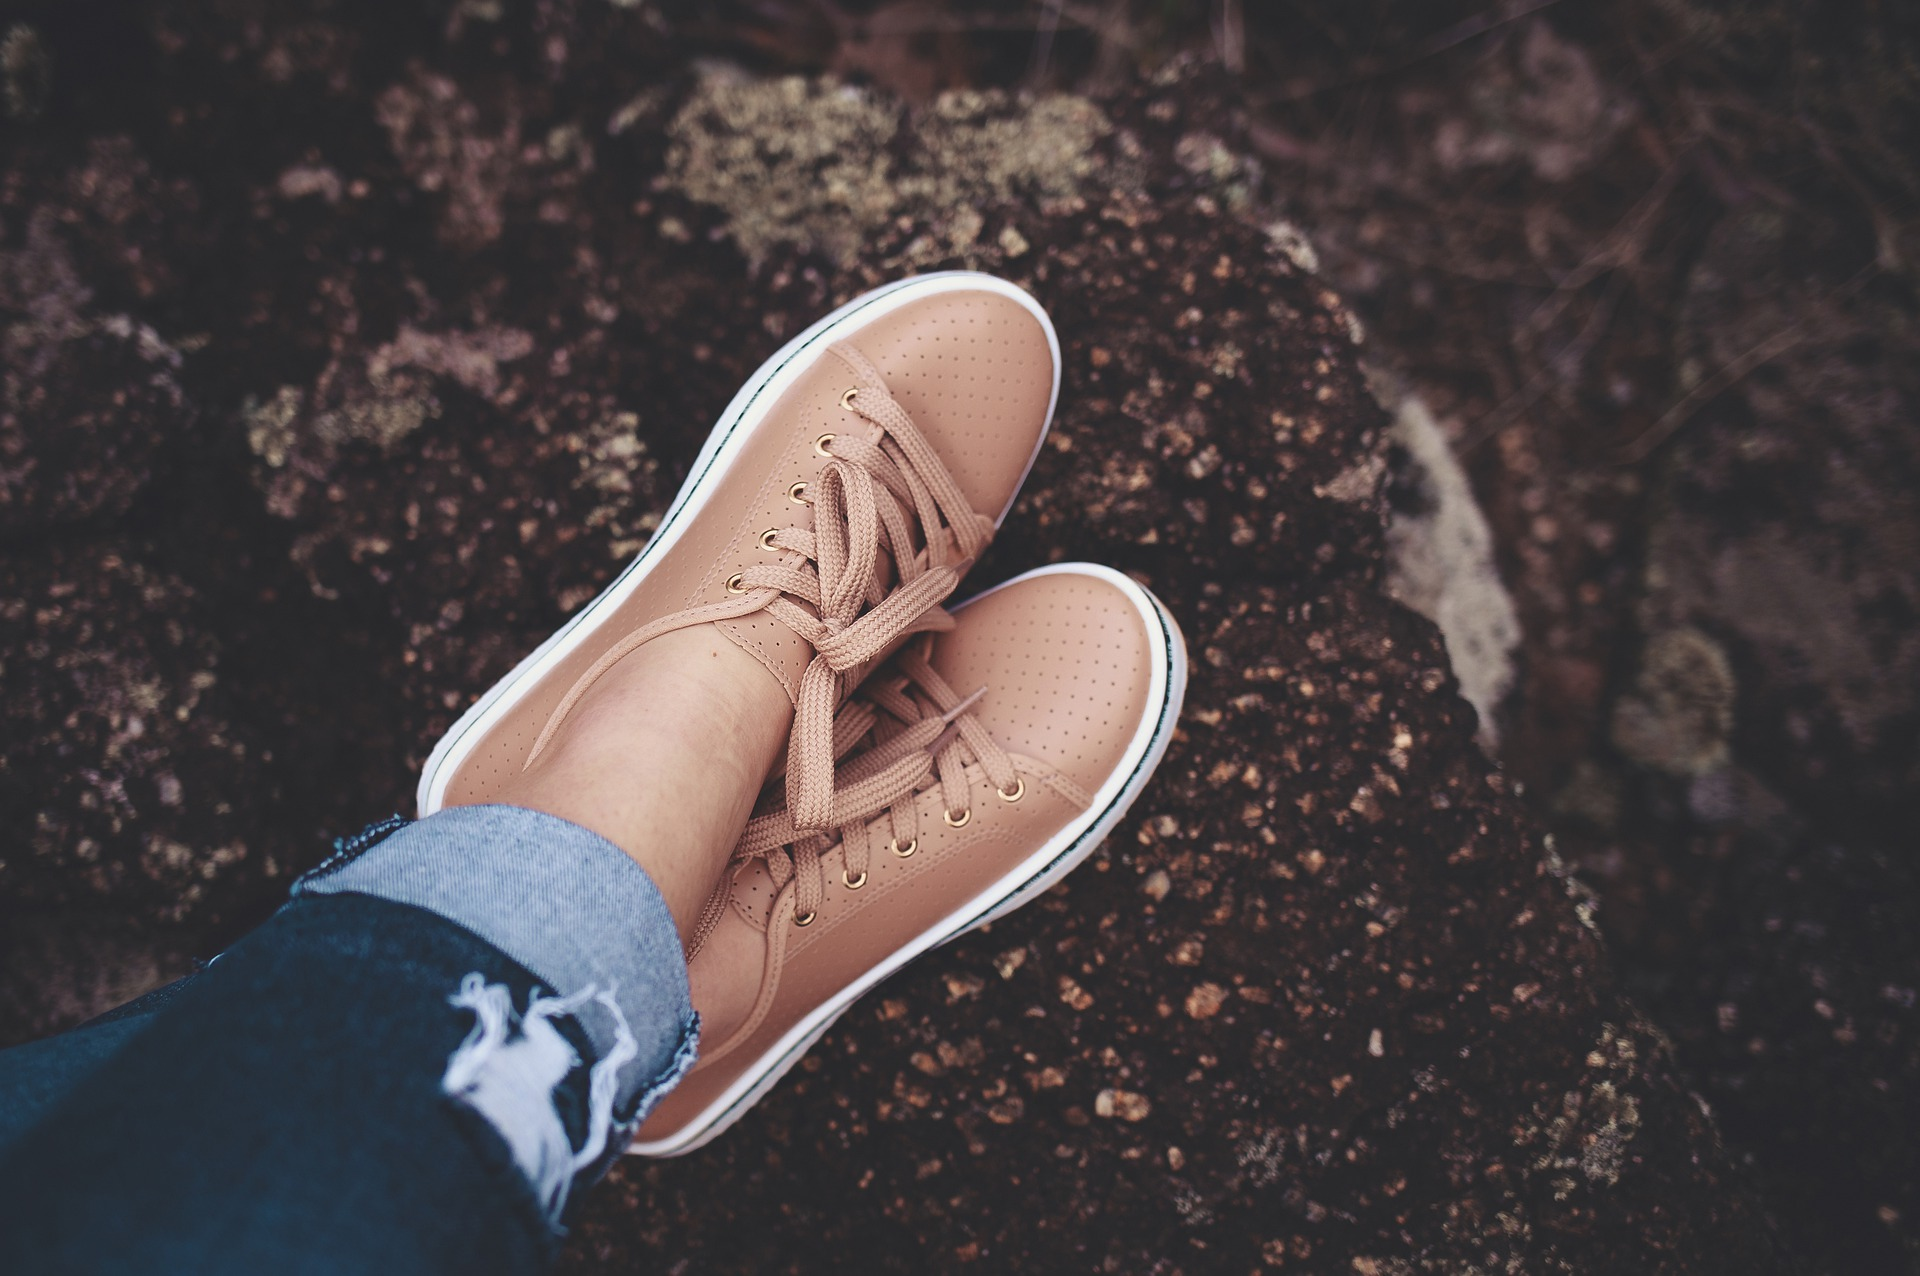 Selecting the Best Orthopedic Shoes for Arthritis Pain